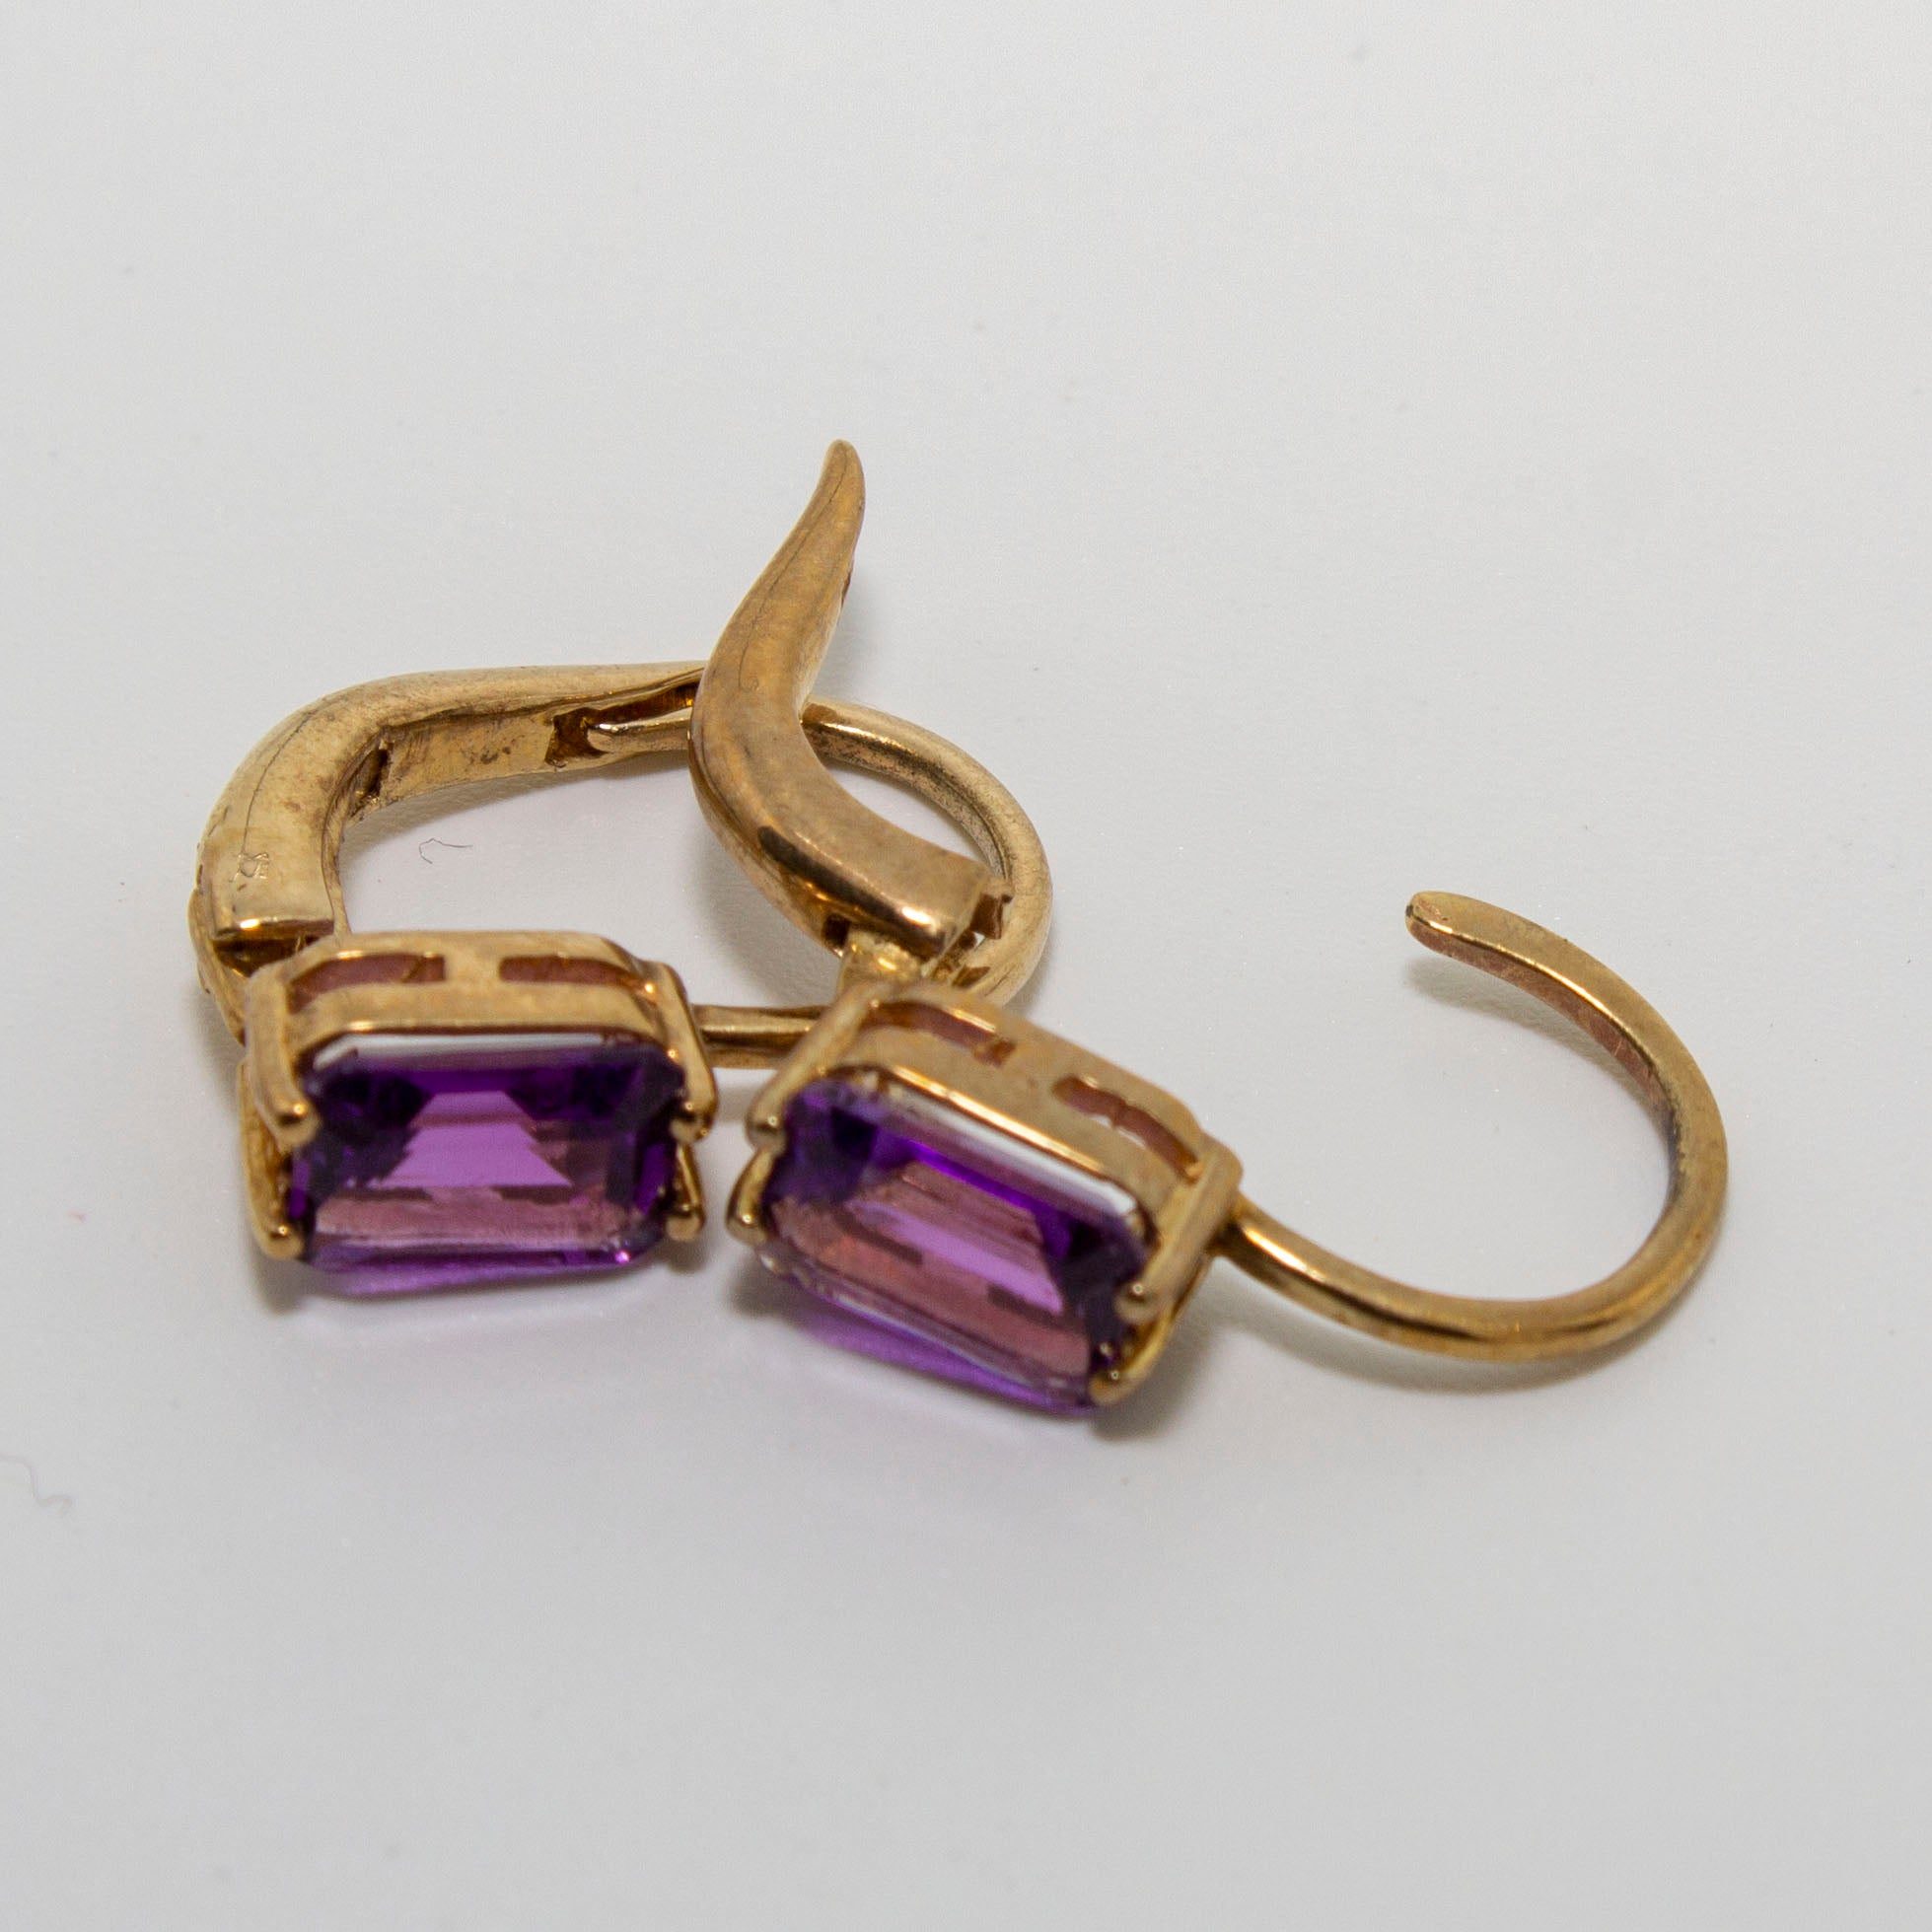 9ct Yellow Gold Emerald Cut Amethyst Earrings